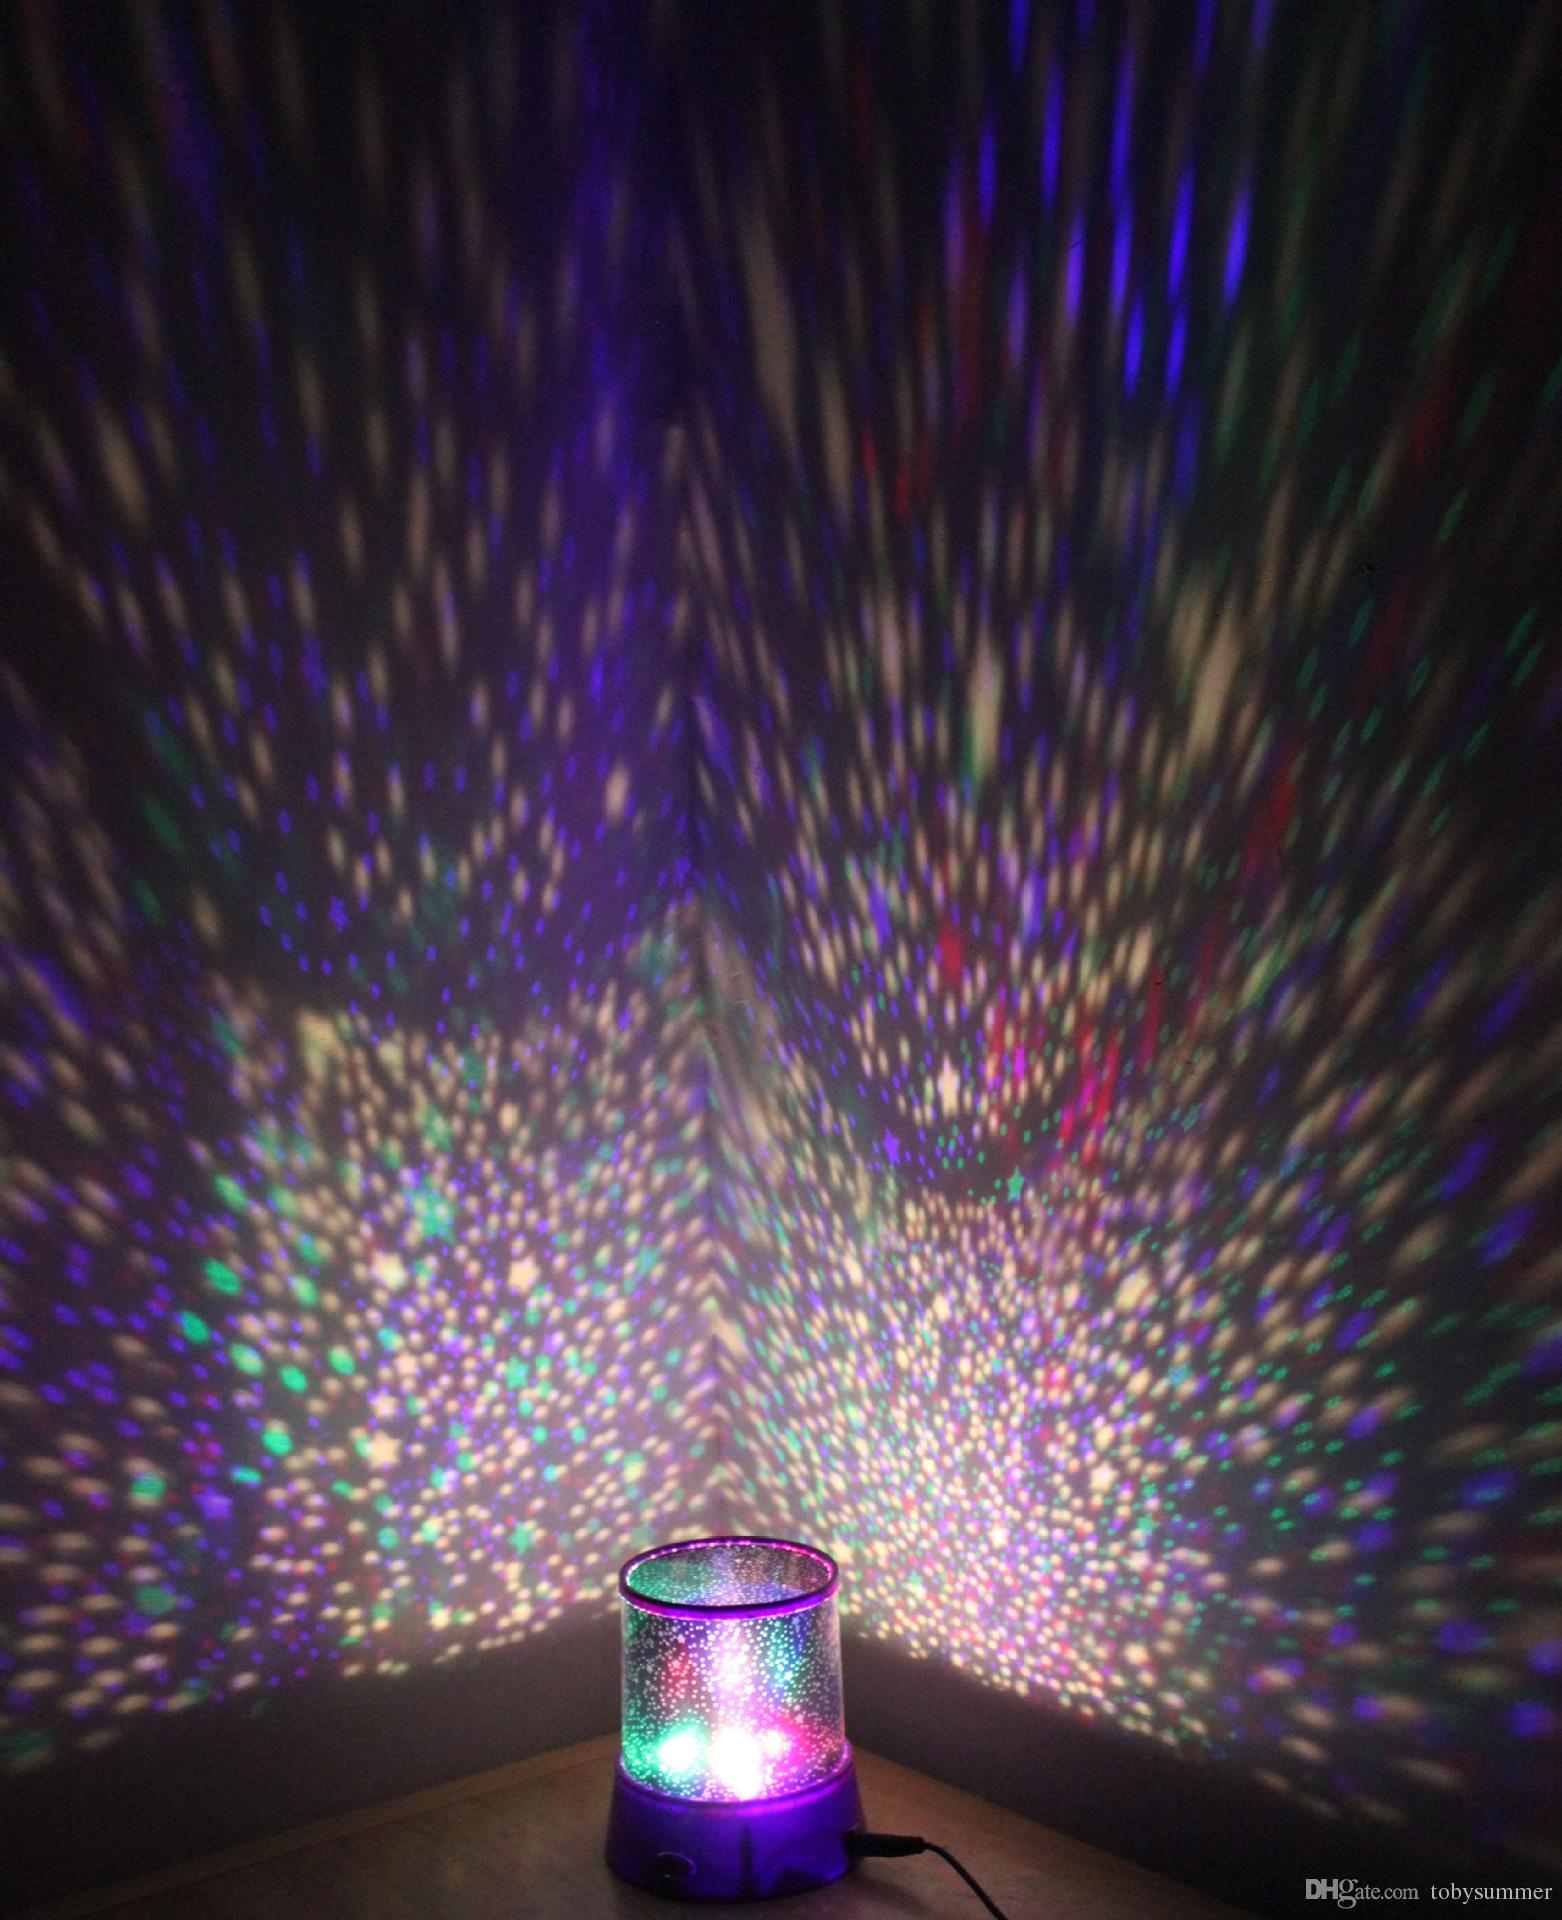 Star projector lamp night - 2015 New Fantastic Celestial Sky Star Projector Lamp Night Light Funny Diy Romantic Valentine S Day Gift